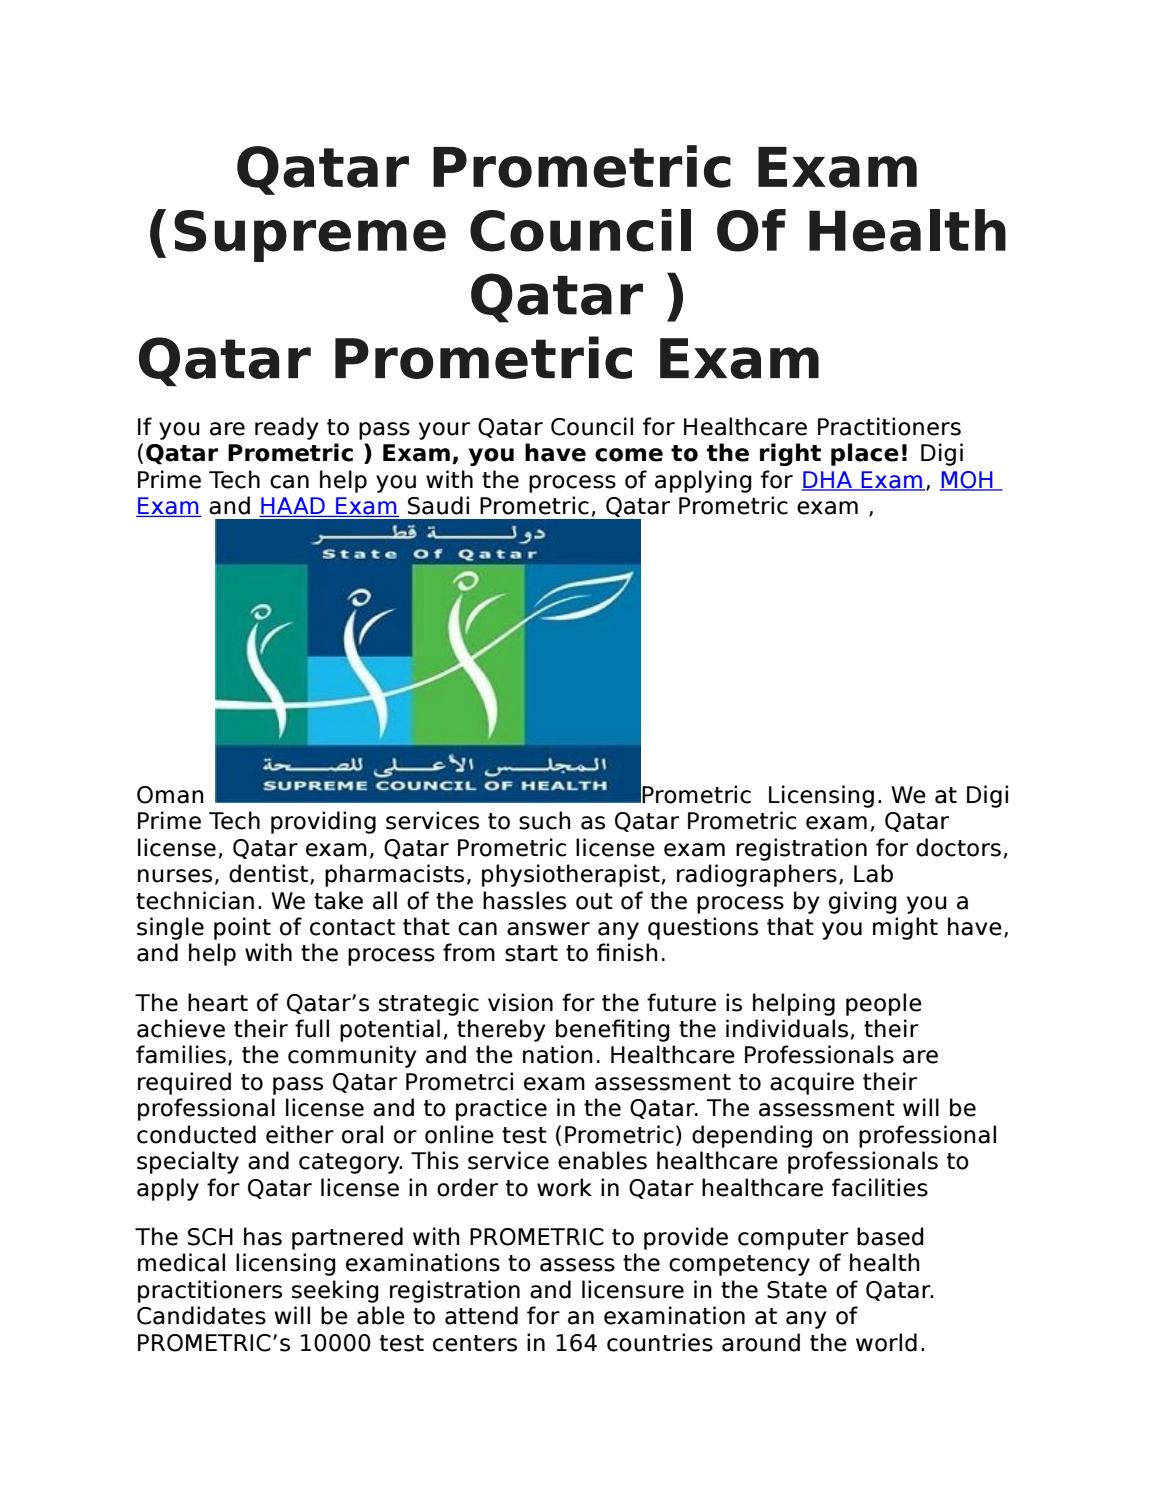 Qatar Prometric Exam | Qatar License Exam Registration